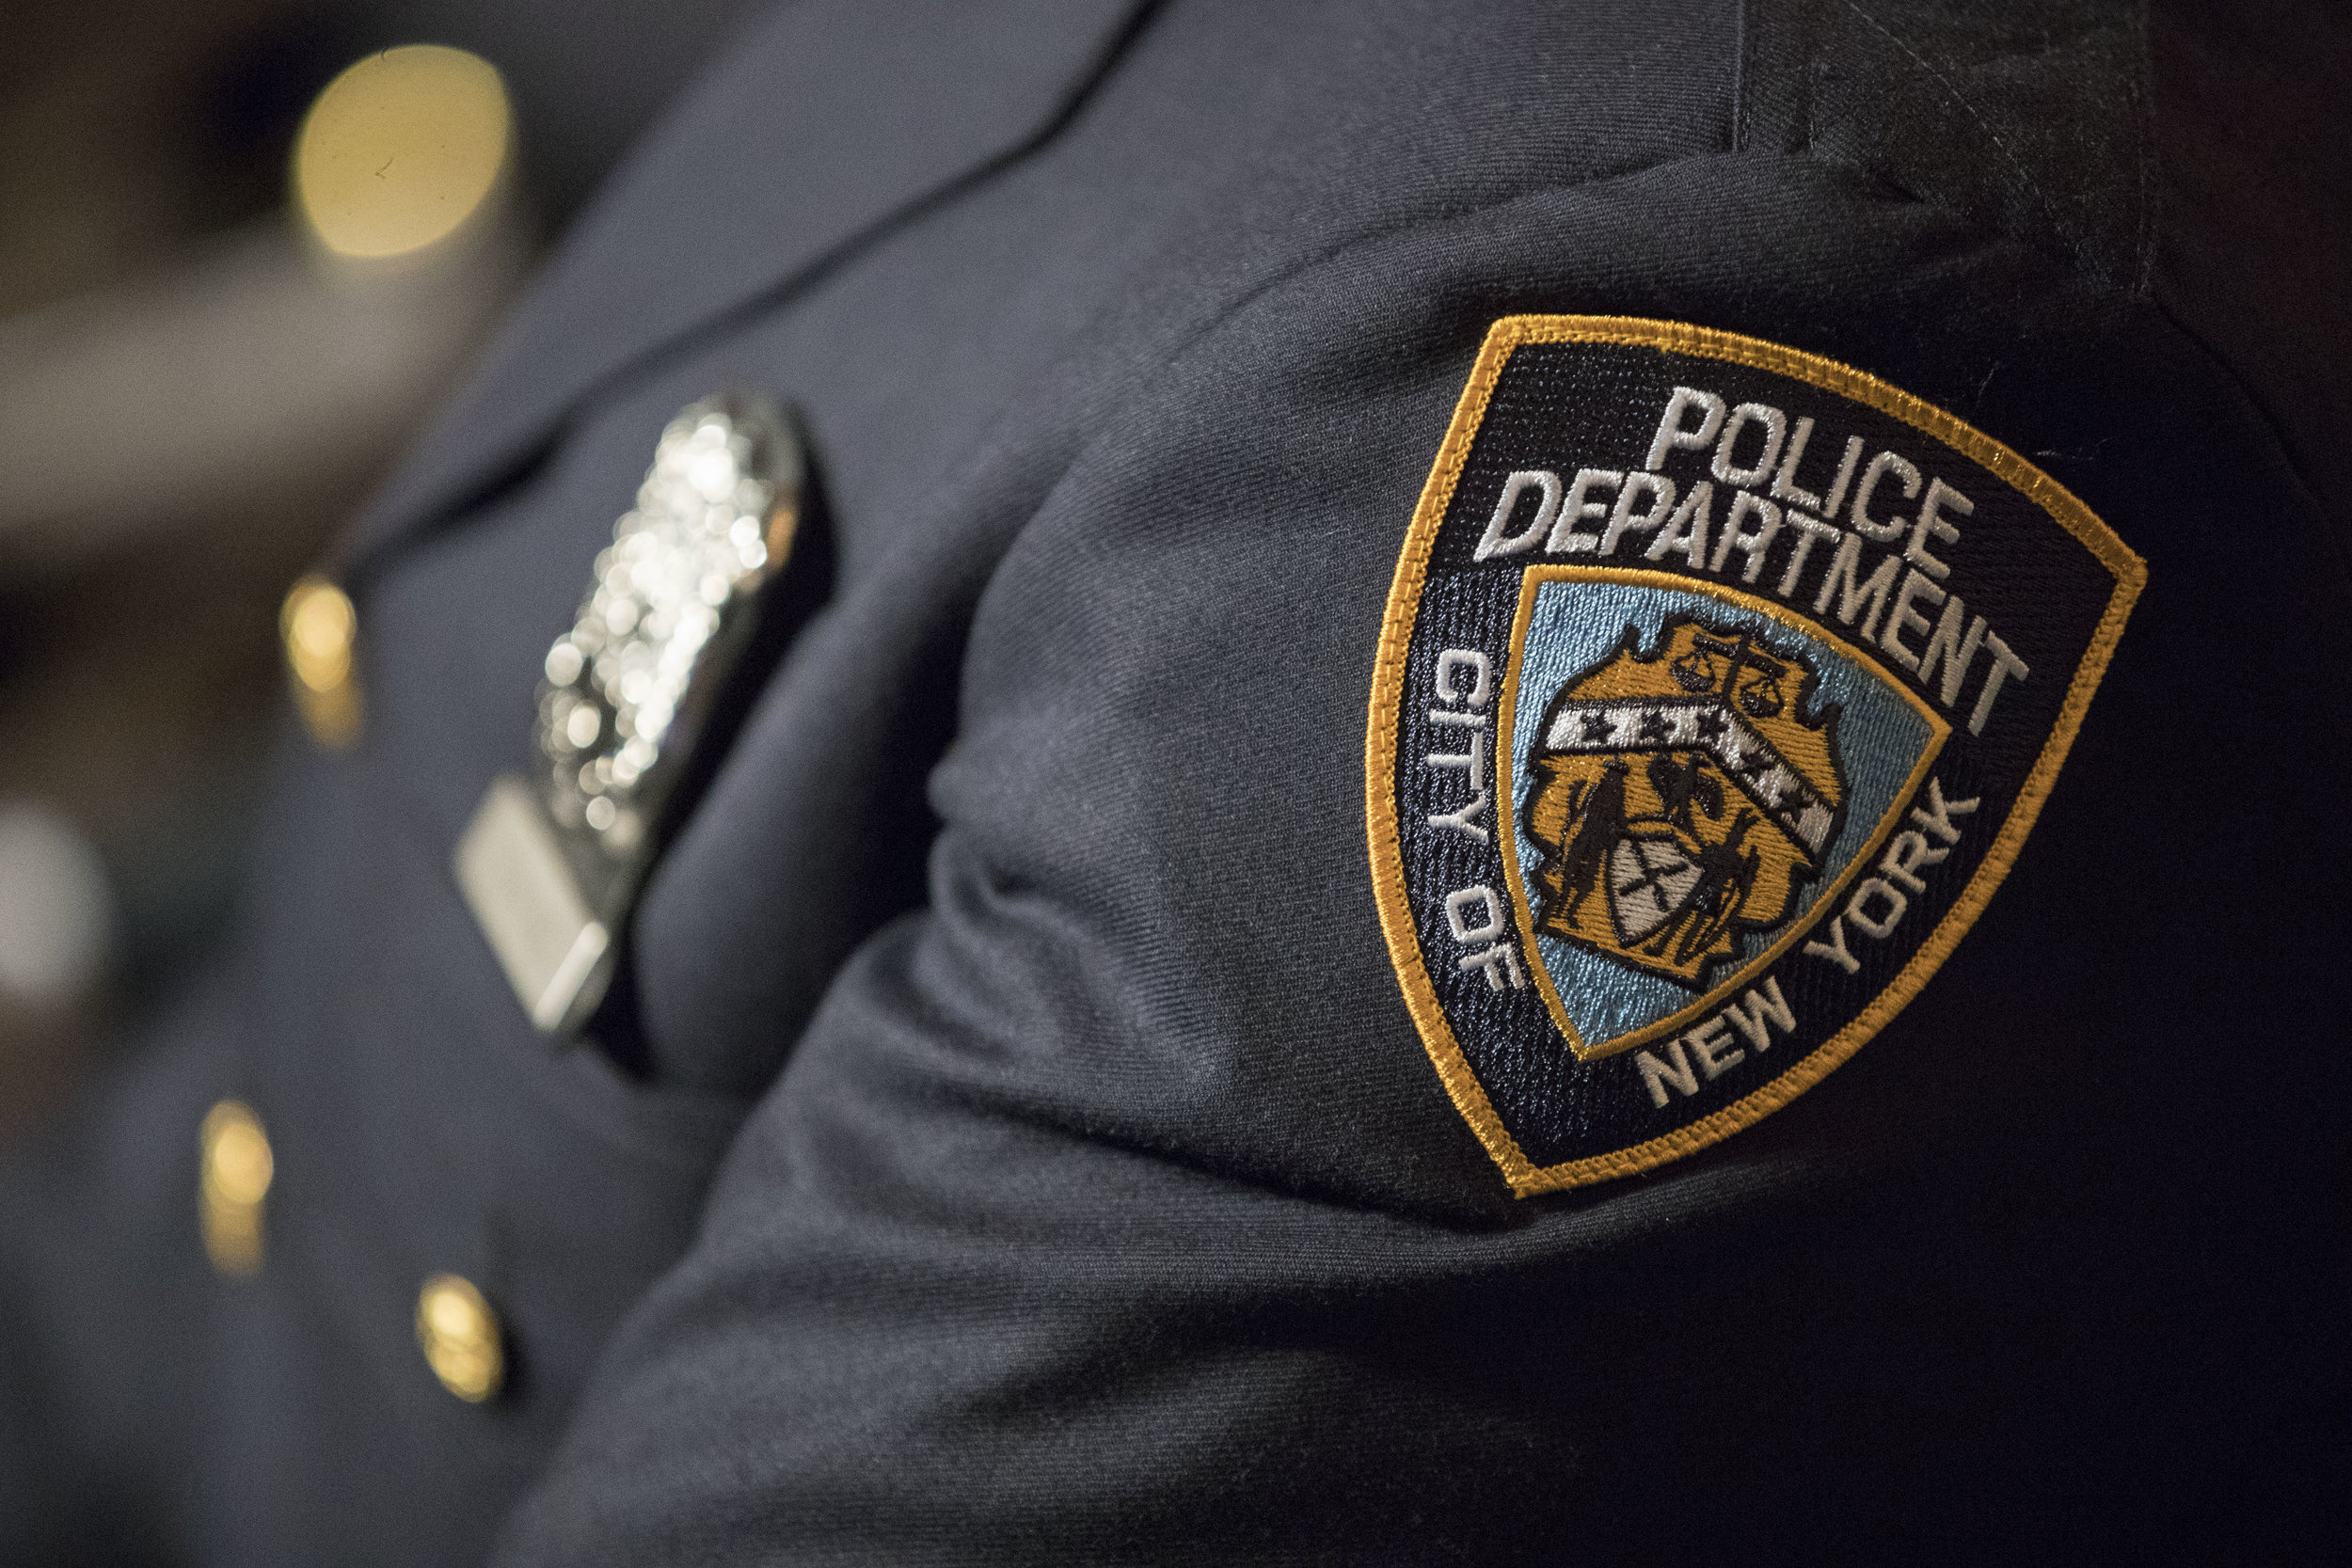 A detail including the badge and shield of one of the newest members of the New York City police is seen during his graduation ceremony, Thursday, June 29, 2017, in New York. AP Photo by Mary Altaffer.